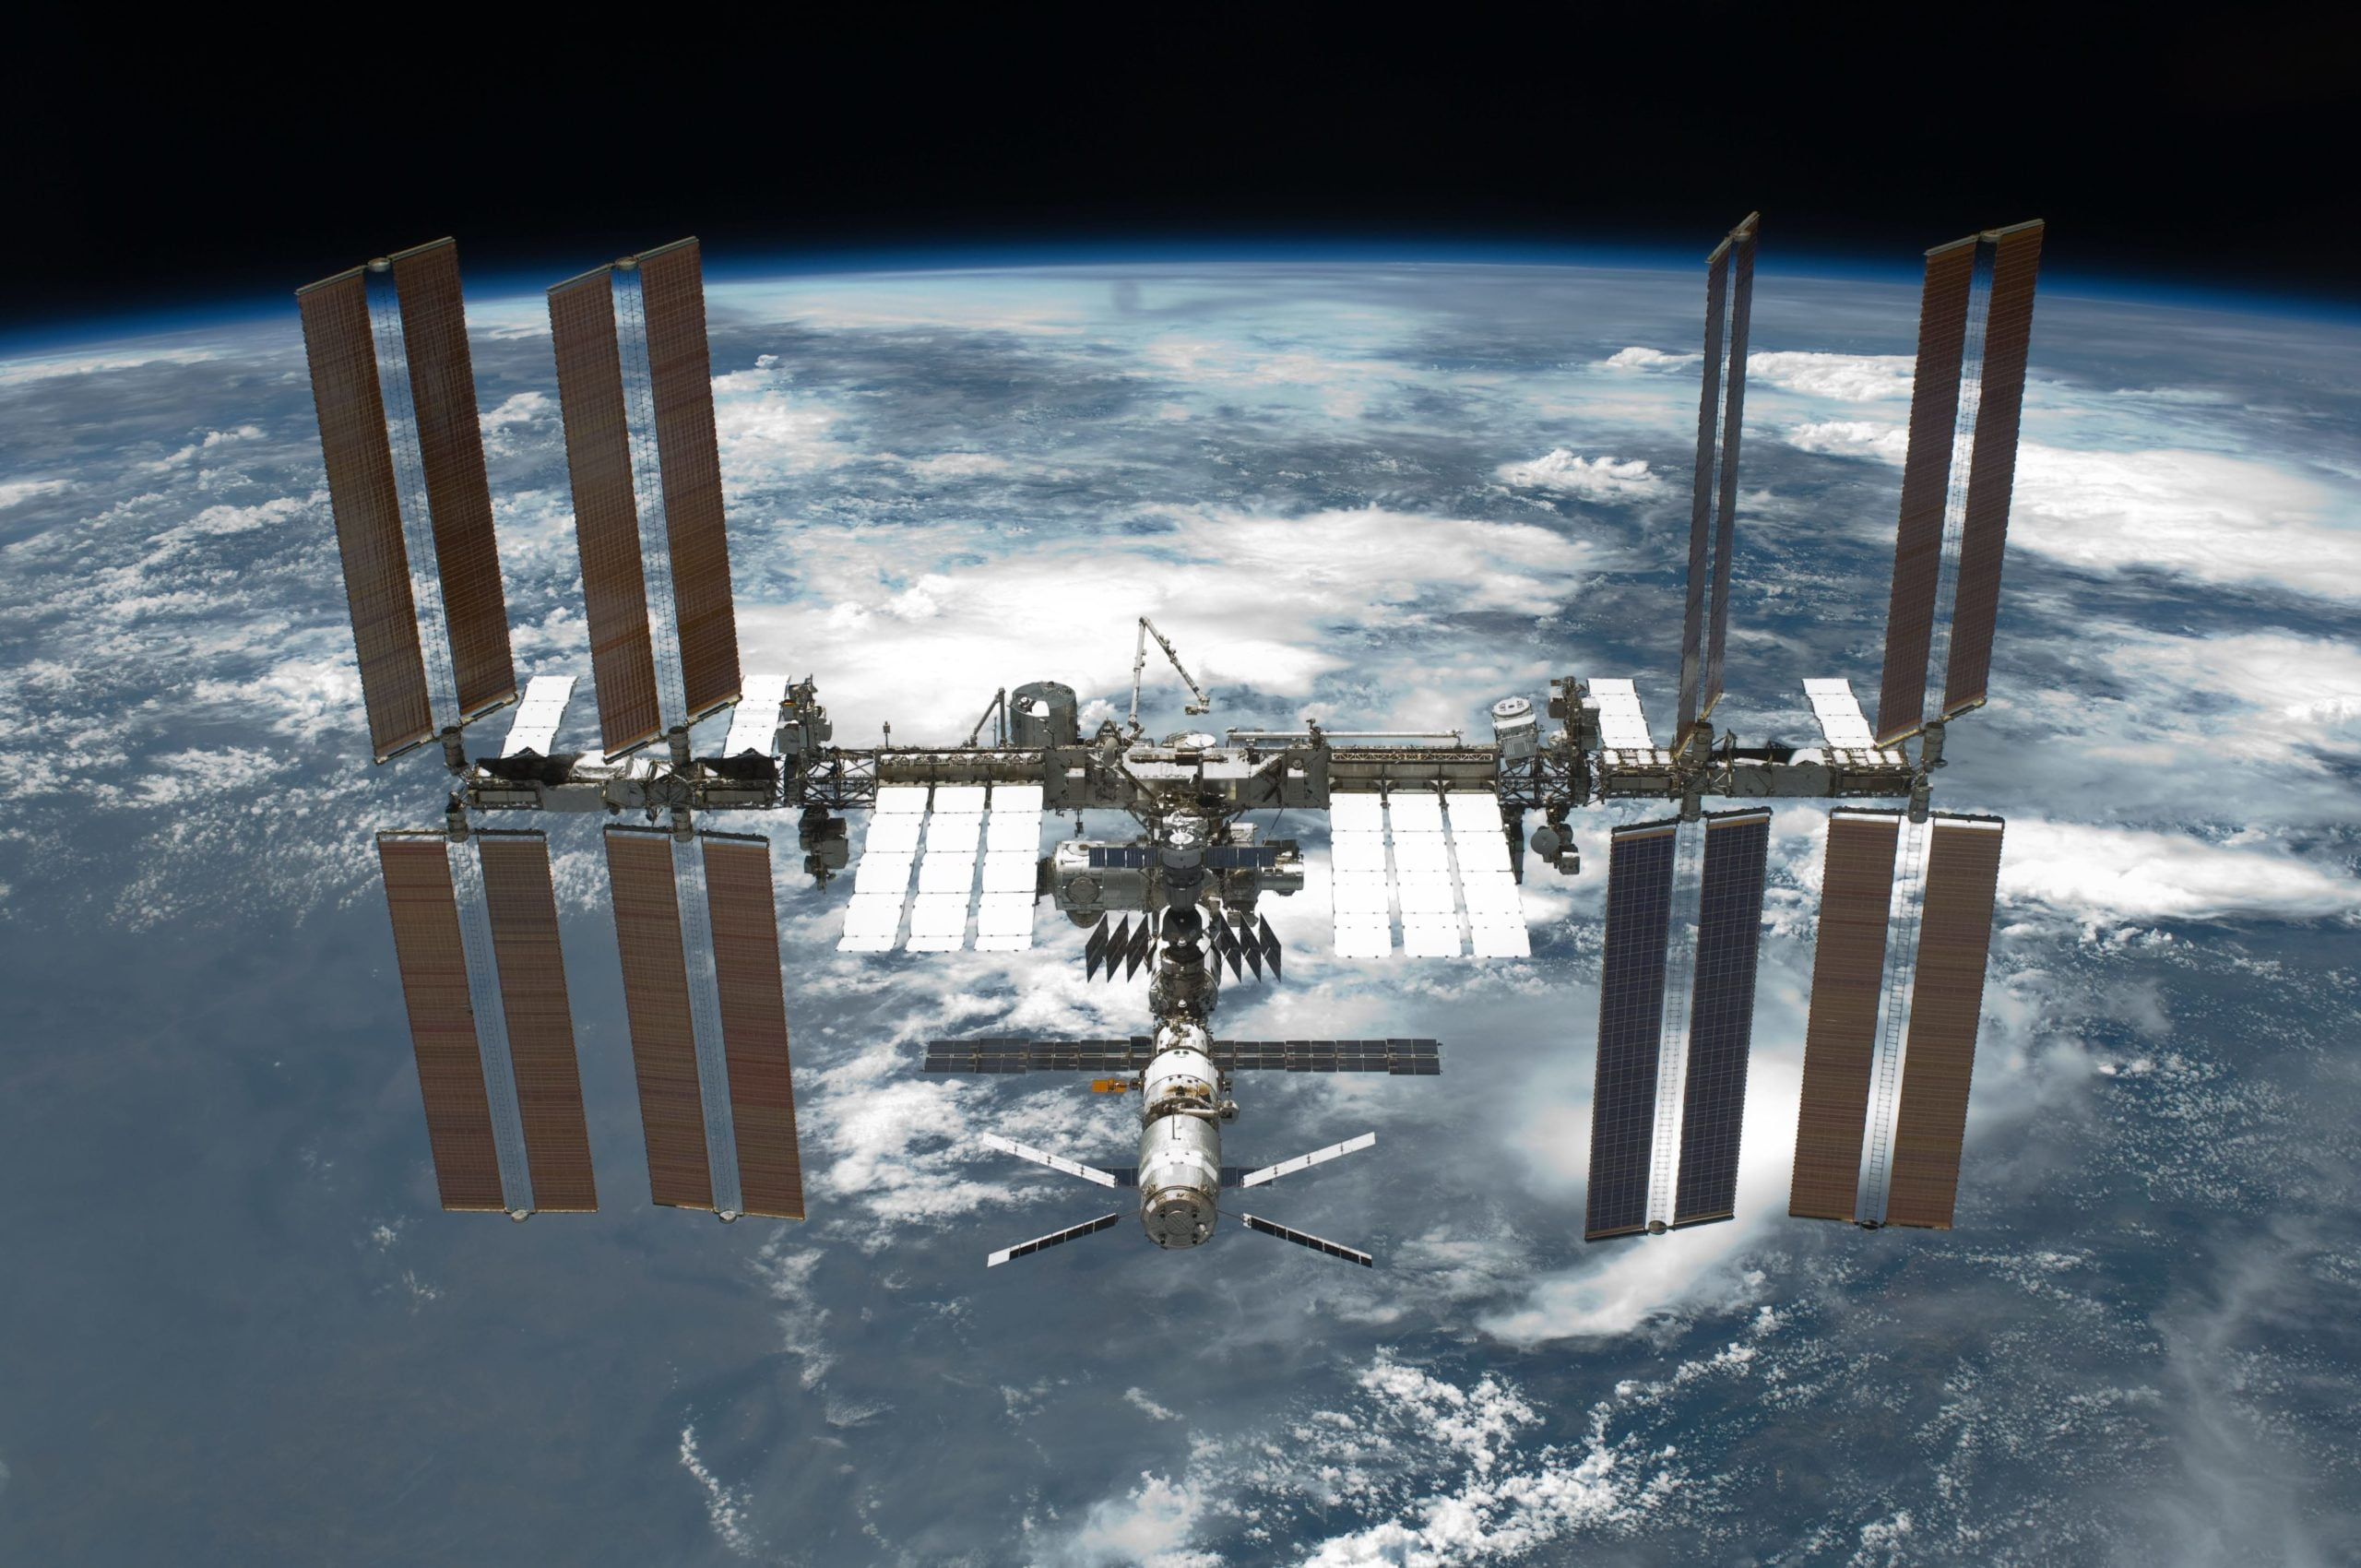 1DROP Launches Medical Diagnostics to the International Space Station